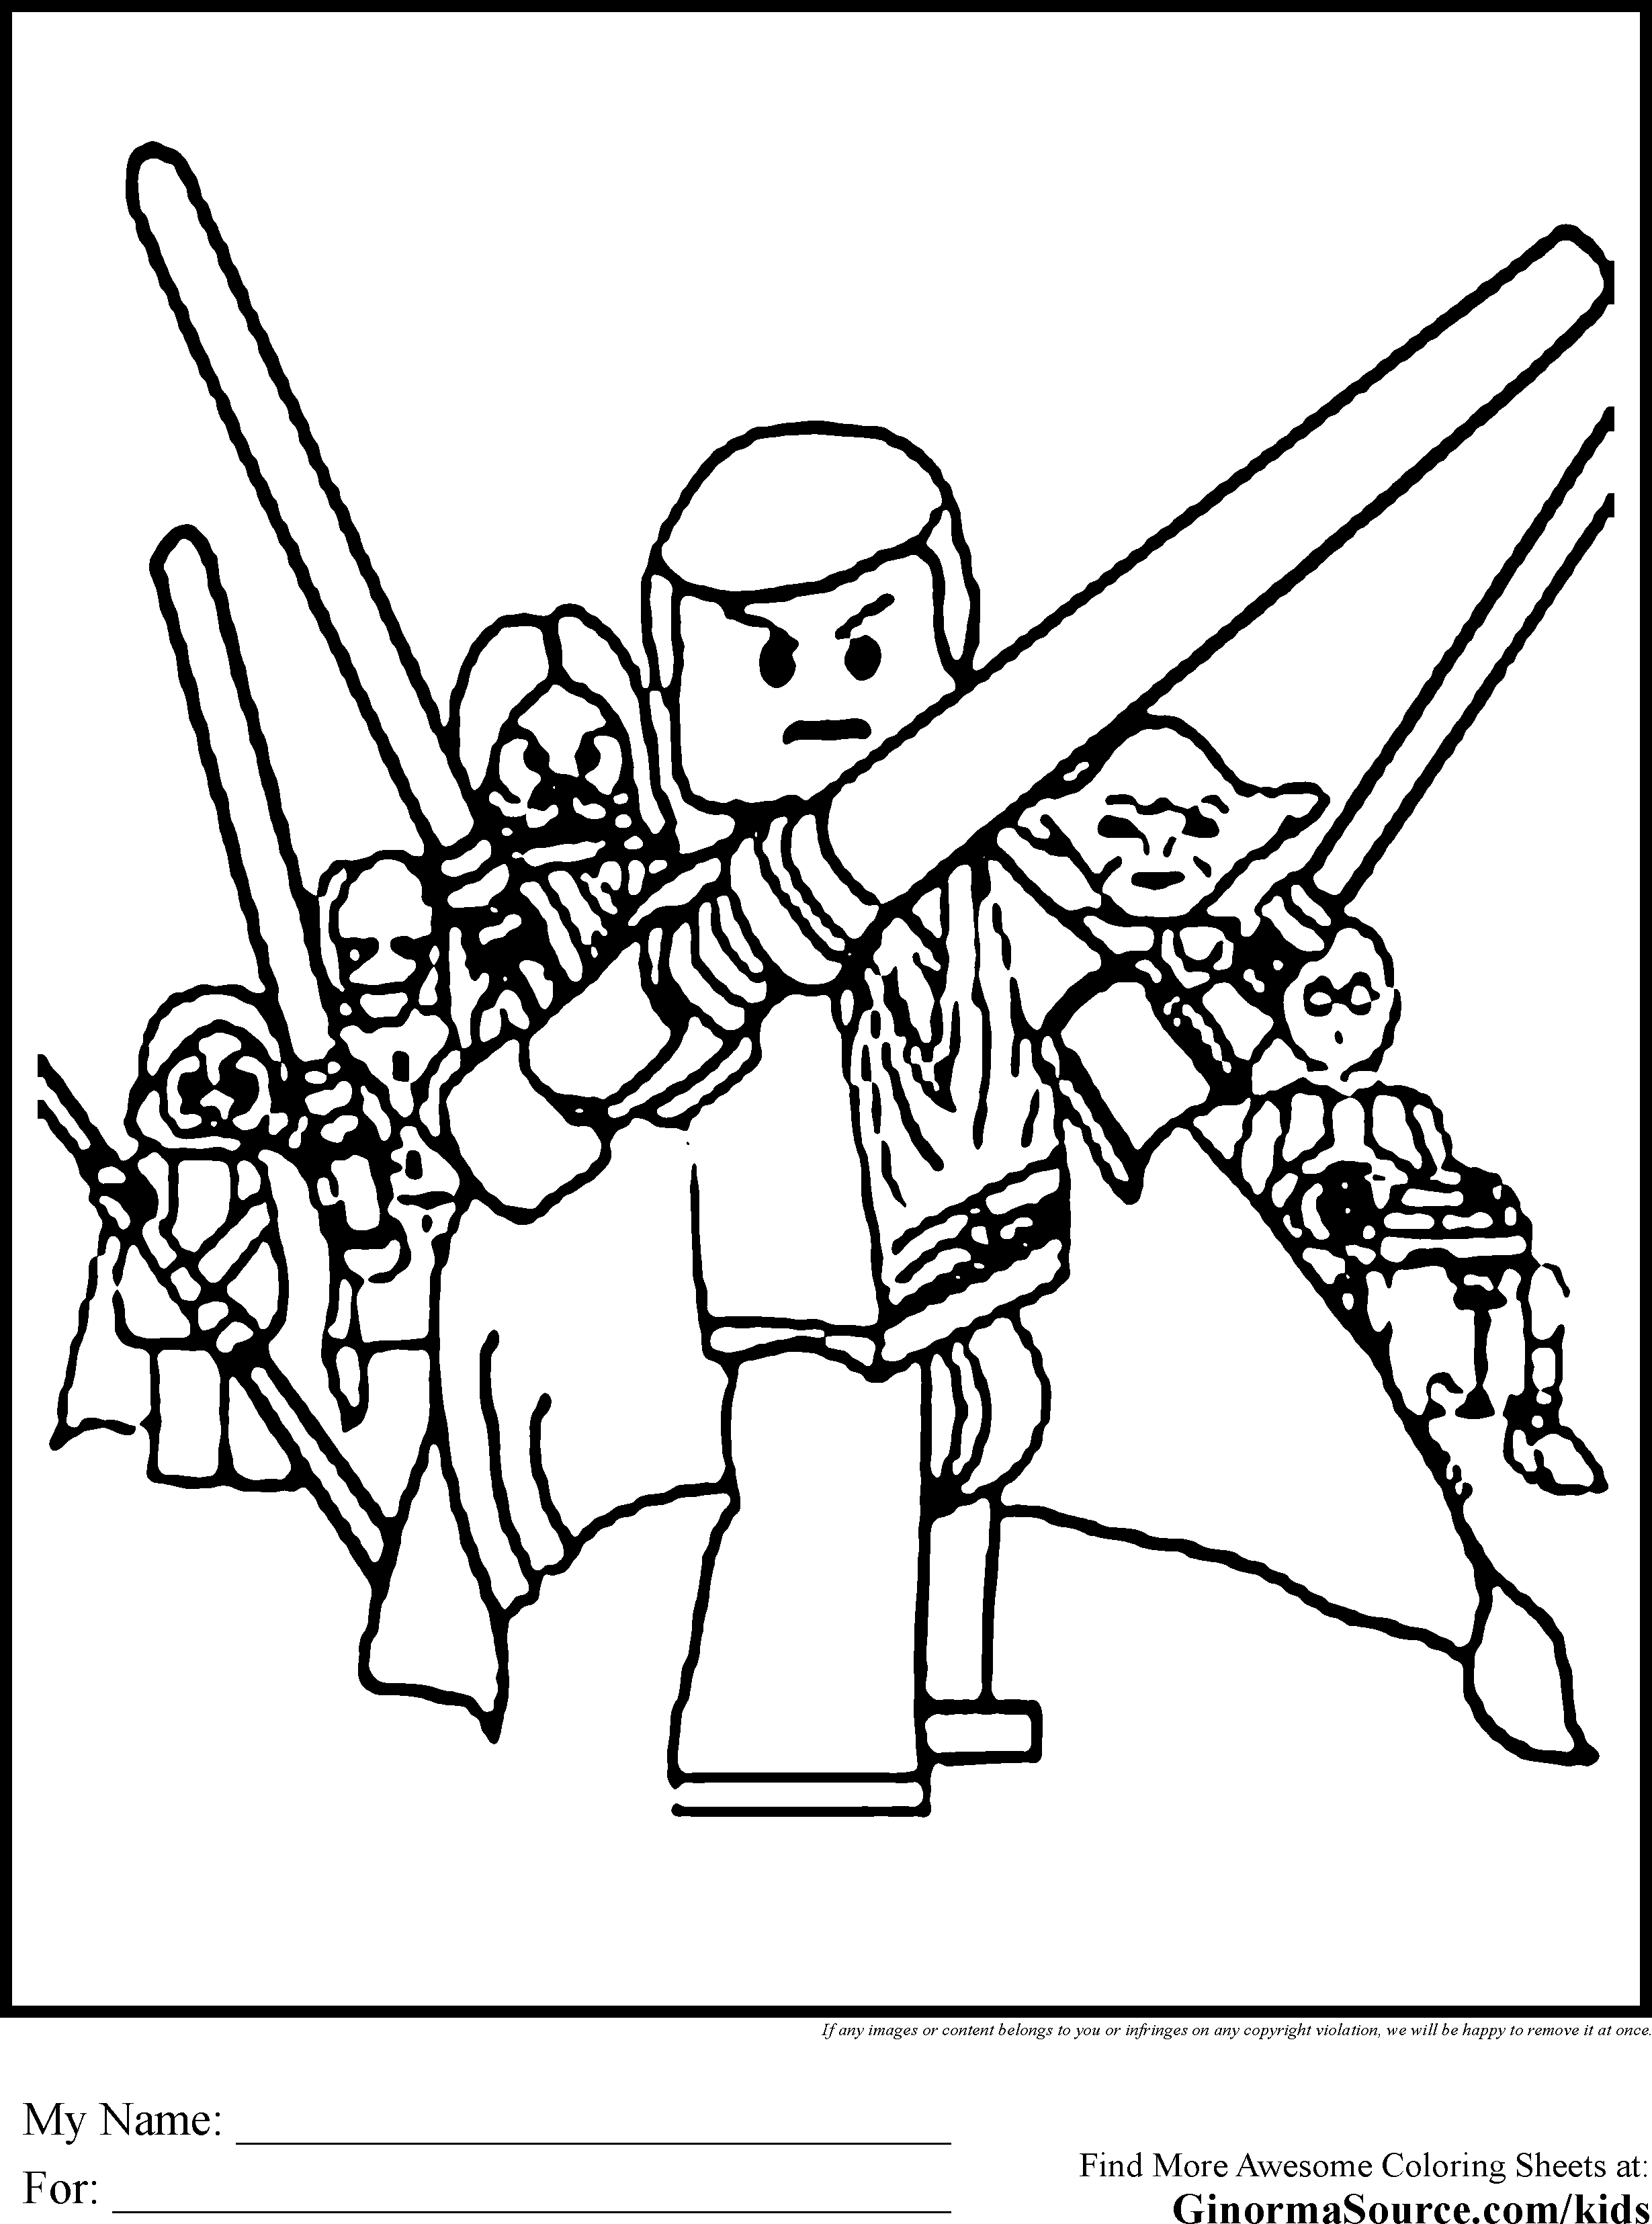 Colouring pages you can colour online - Star Wars Coloring Pages That You Can Color Online Printerkids Printable Coloring Pages For Kids Star Wars Coloring Pages